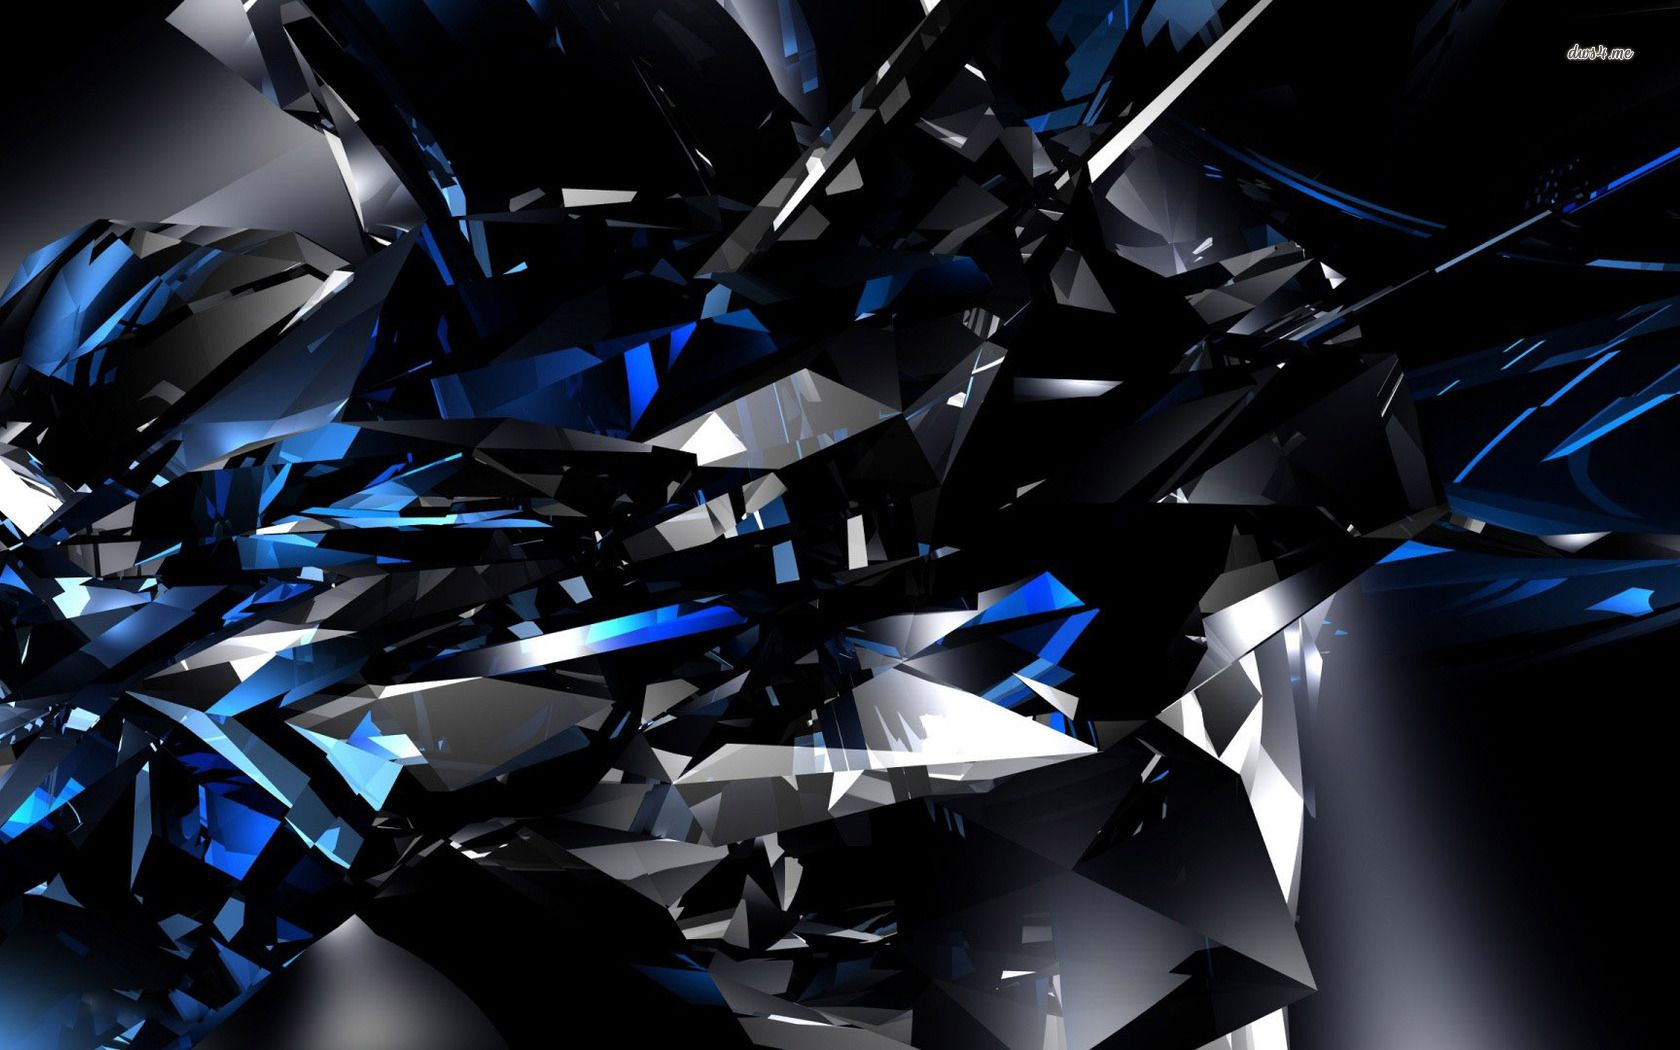 Black And Blue Crystals Hd Wallpaper Black And Blue Background Black And Blue Wallpaper Dark Blue Wallpaper